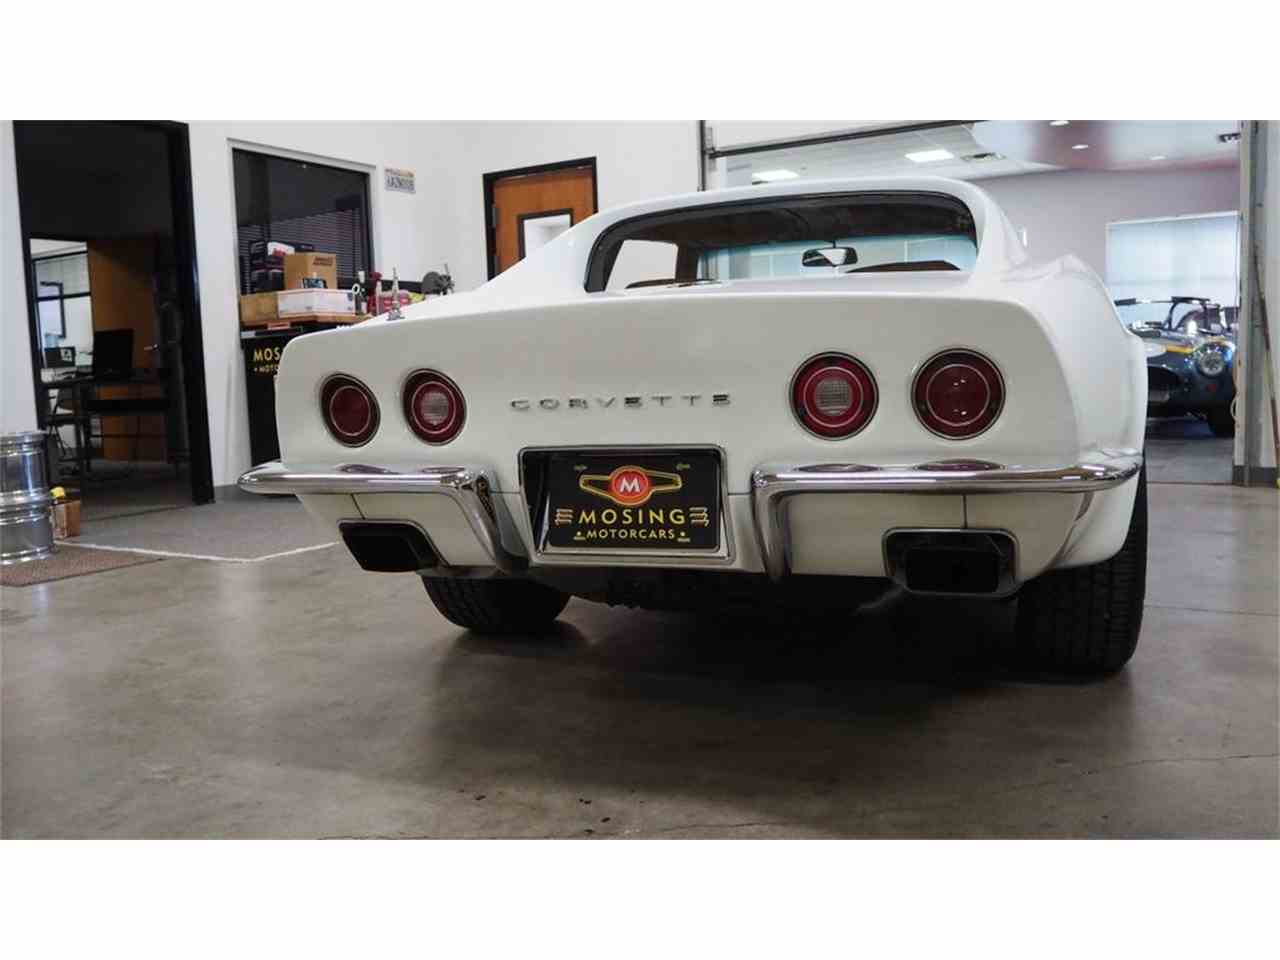 Large Picture of 1971 Chevrolet Corvette located in Austin Texas - $29,999.00 Offered by Mosing Motorcars - M86F